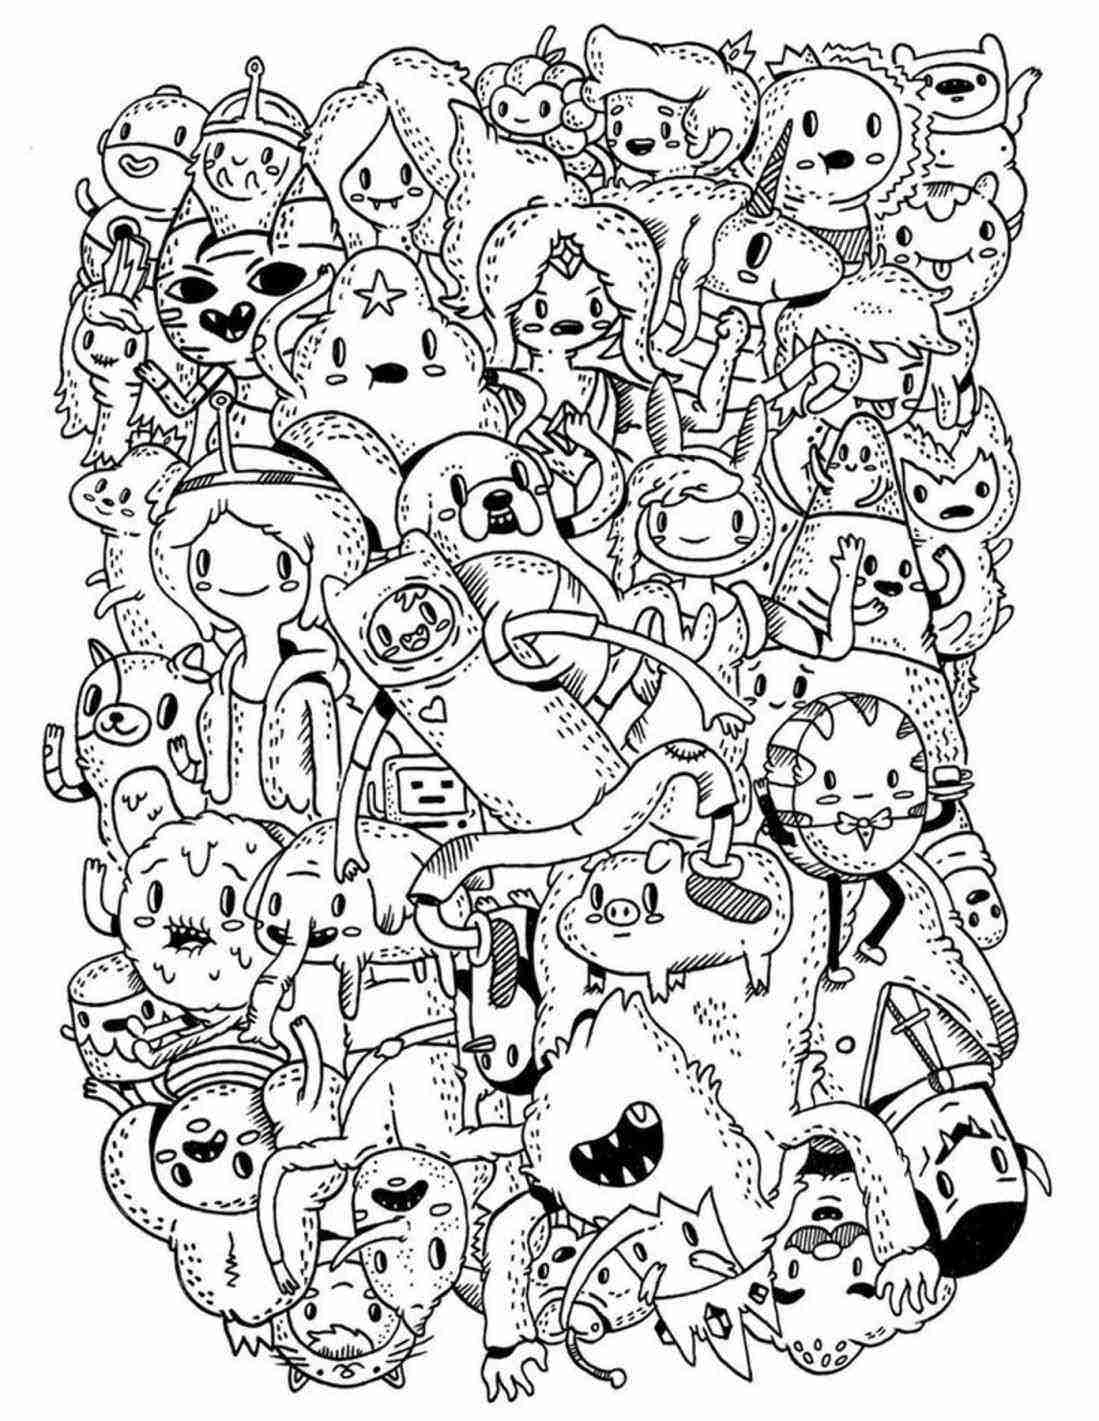 1099x1421 Gumball Sketchbook Cartoon Network Coloring Page Wecoloringpage